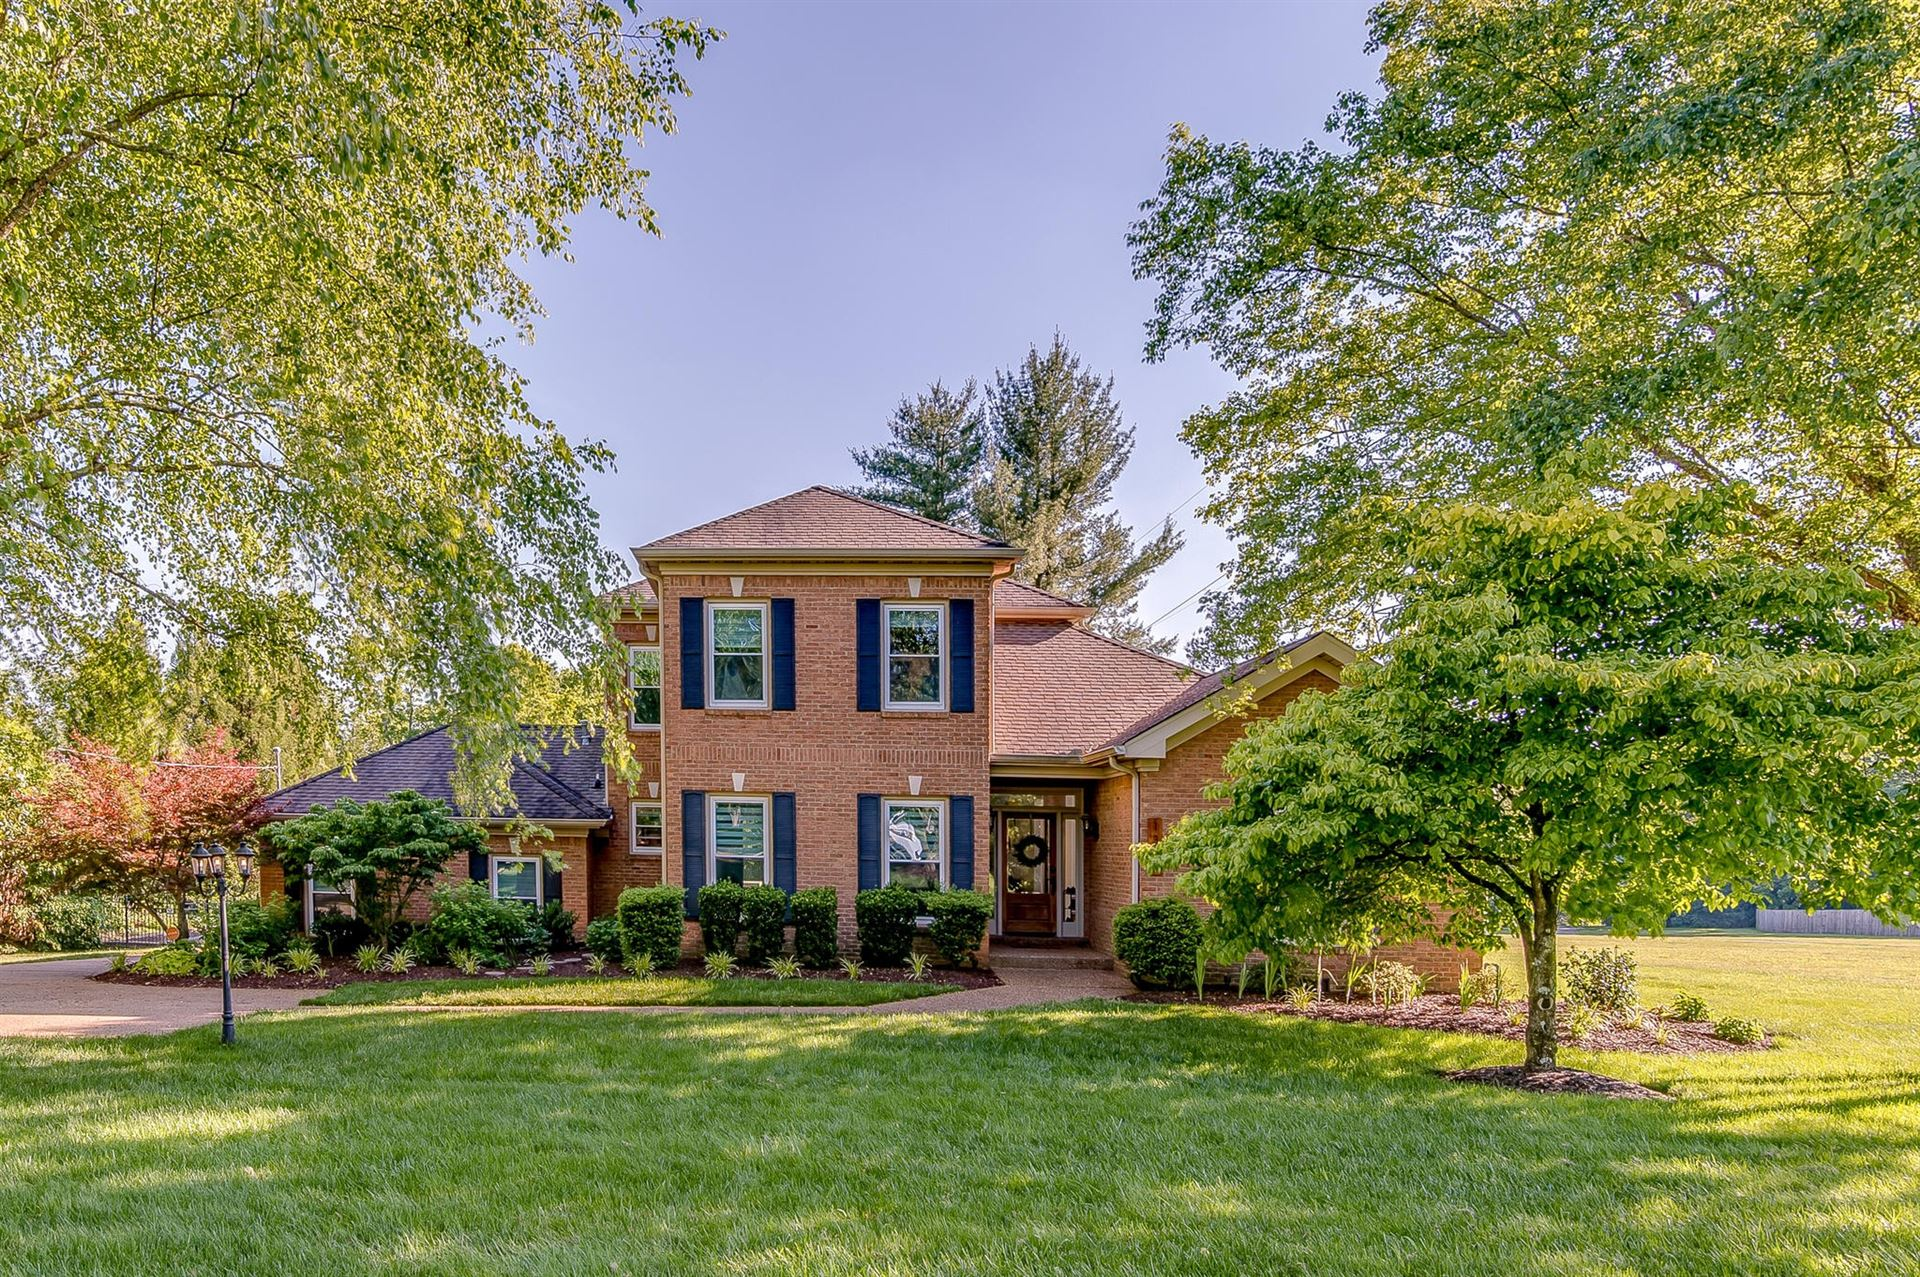 Photo of 1315 Arrowhead Dr, Brentwood, TN 37027 (MLS # 2156492)